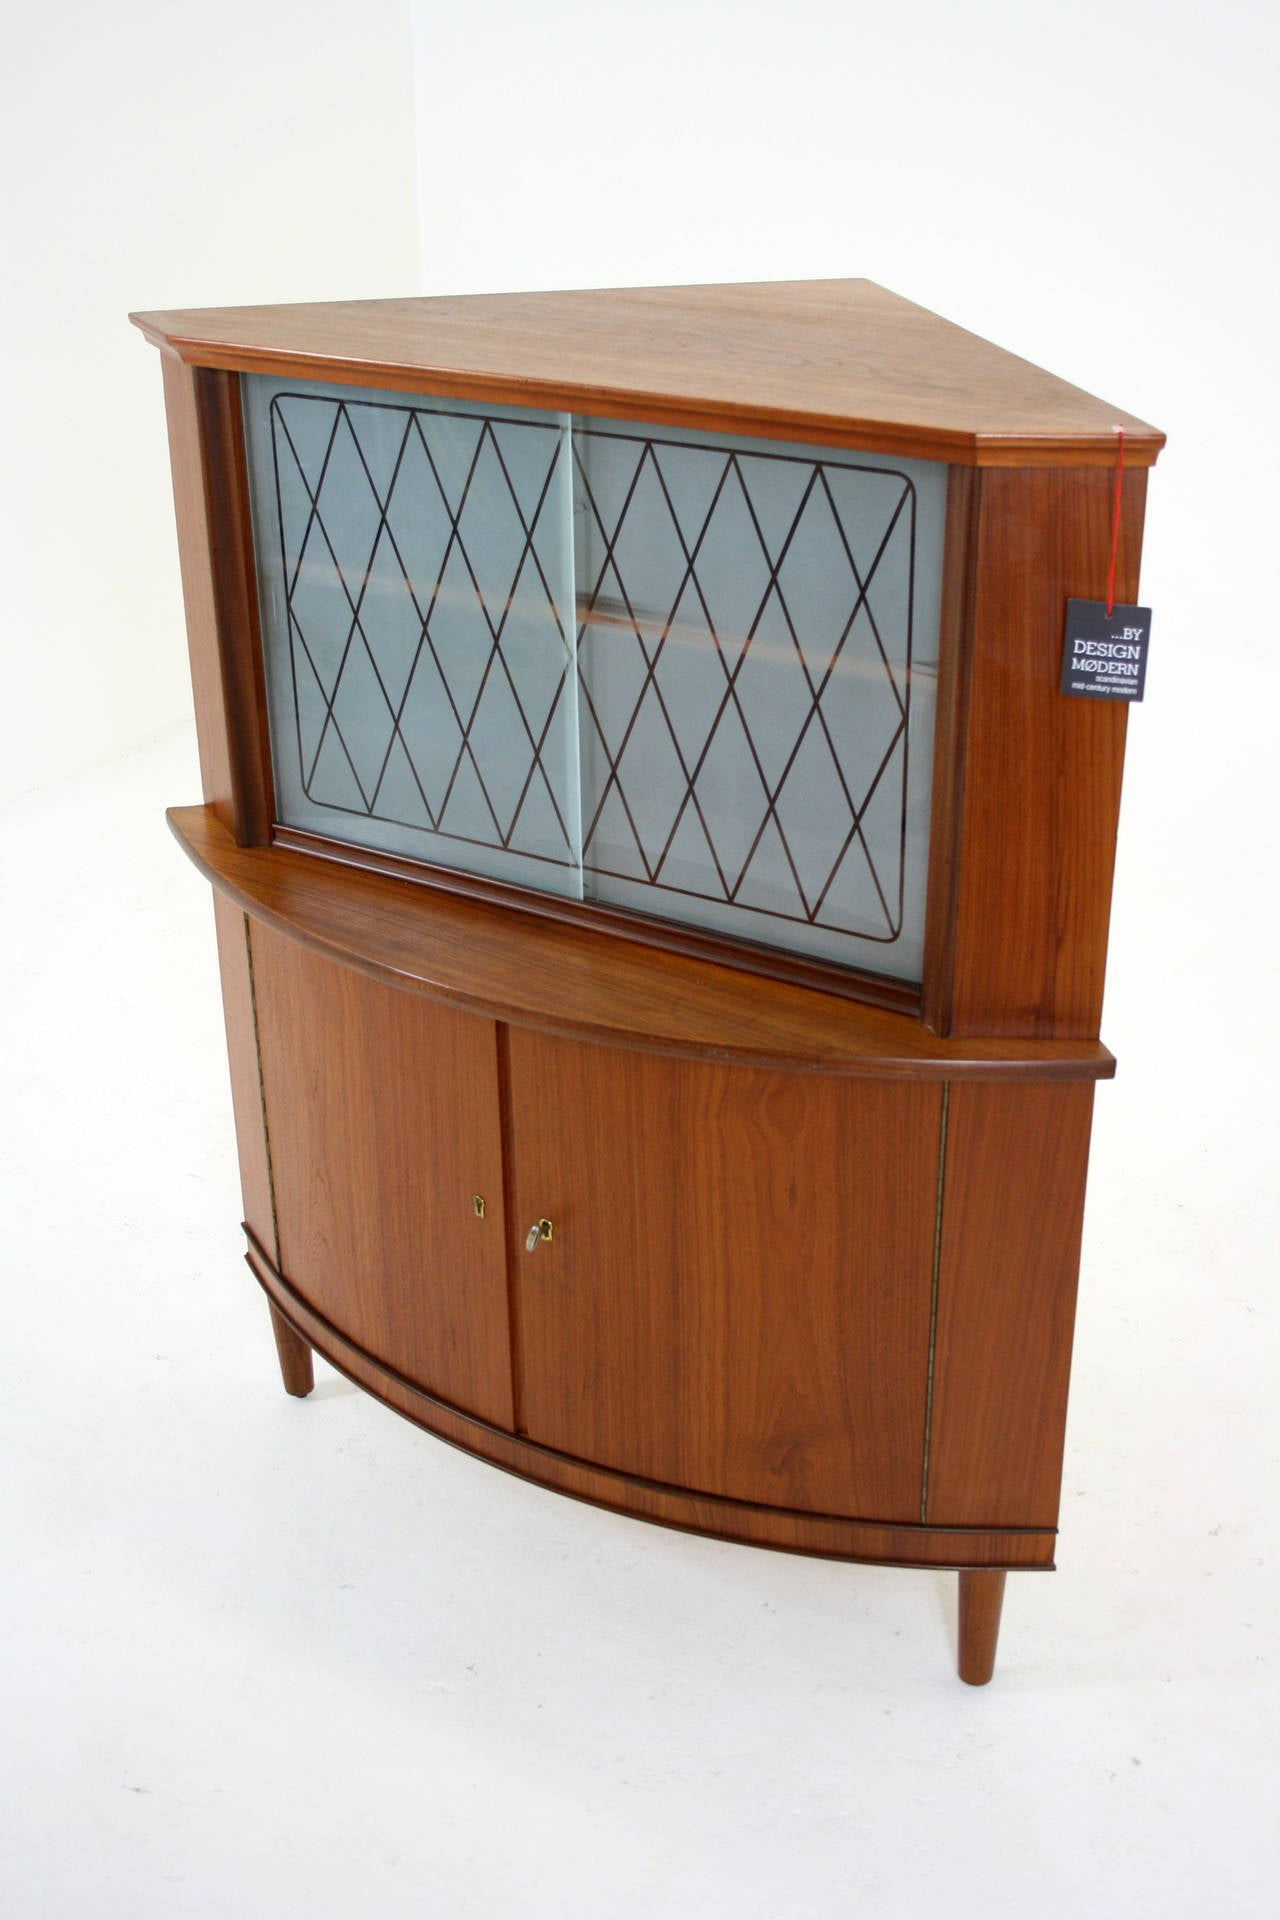 Danish mid century modern teak corner cabinet or bar for Modern teak kitchen cabinets